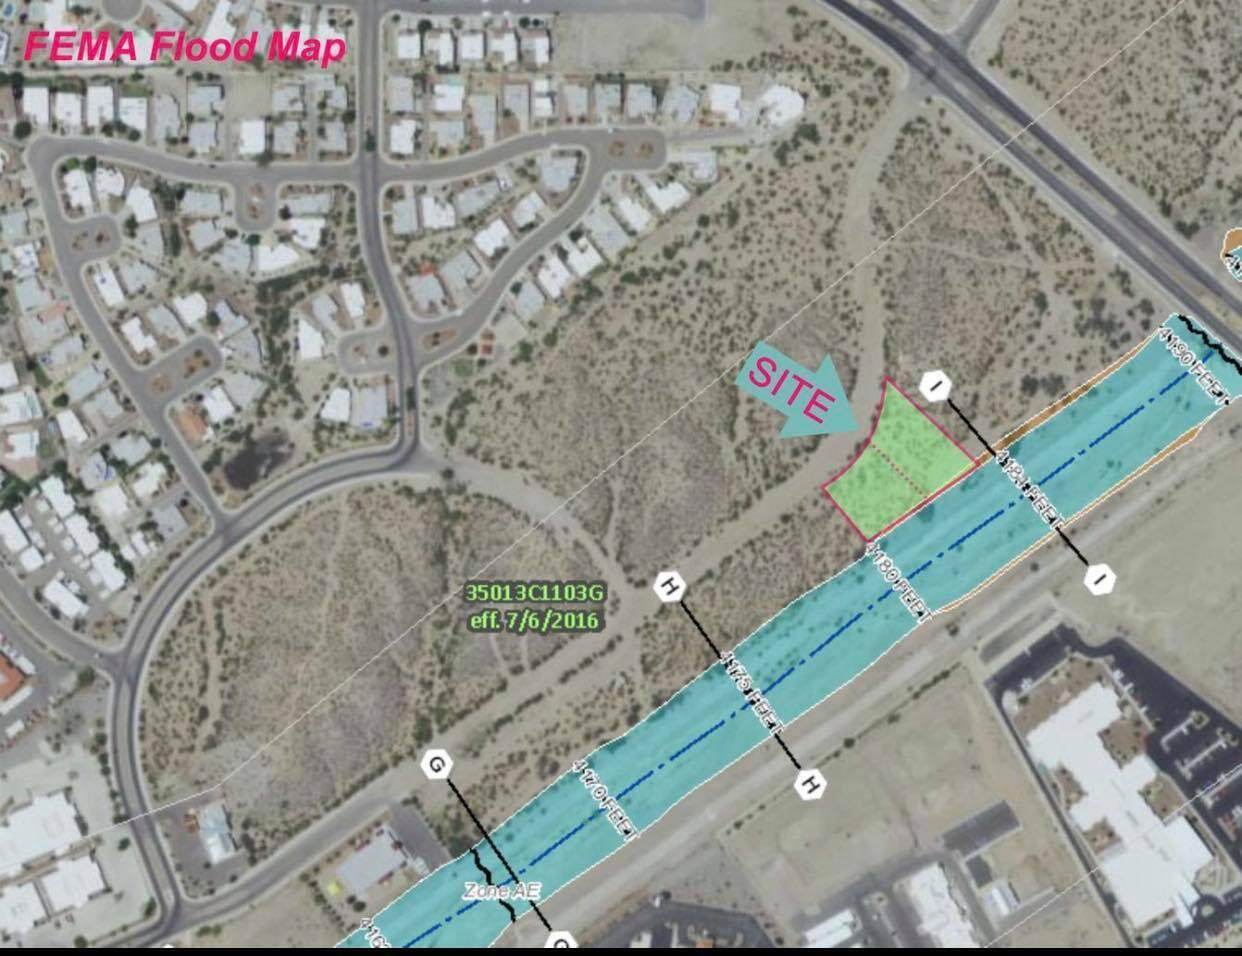 4250 Camino Coyote Lane, Las Cruces, New Mexico 88011, ,Commercial,For sale,Camino Coyote,840819